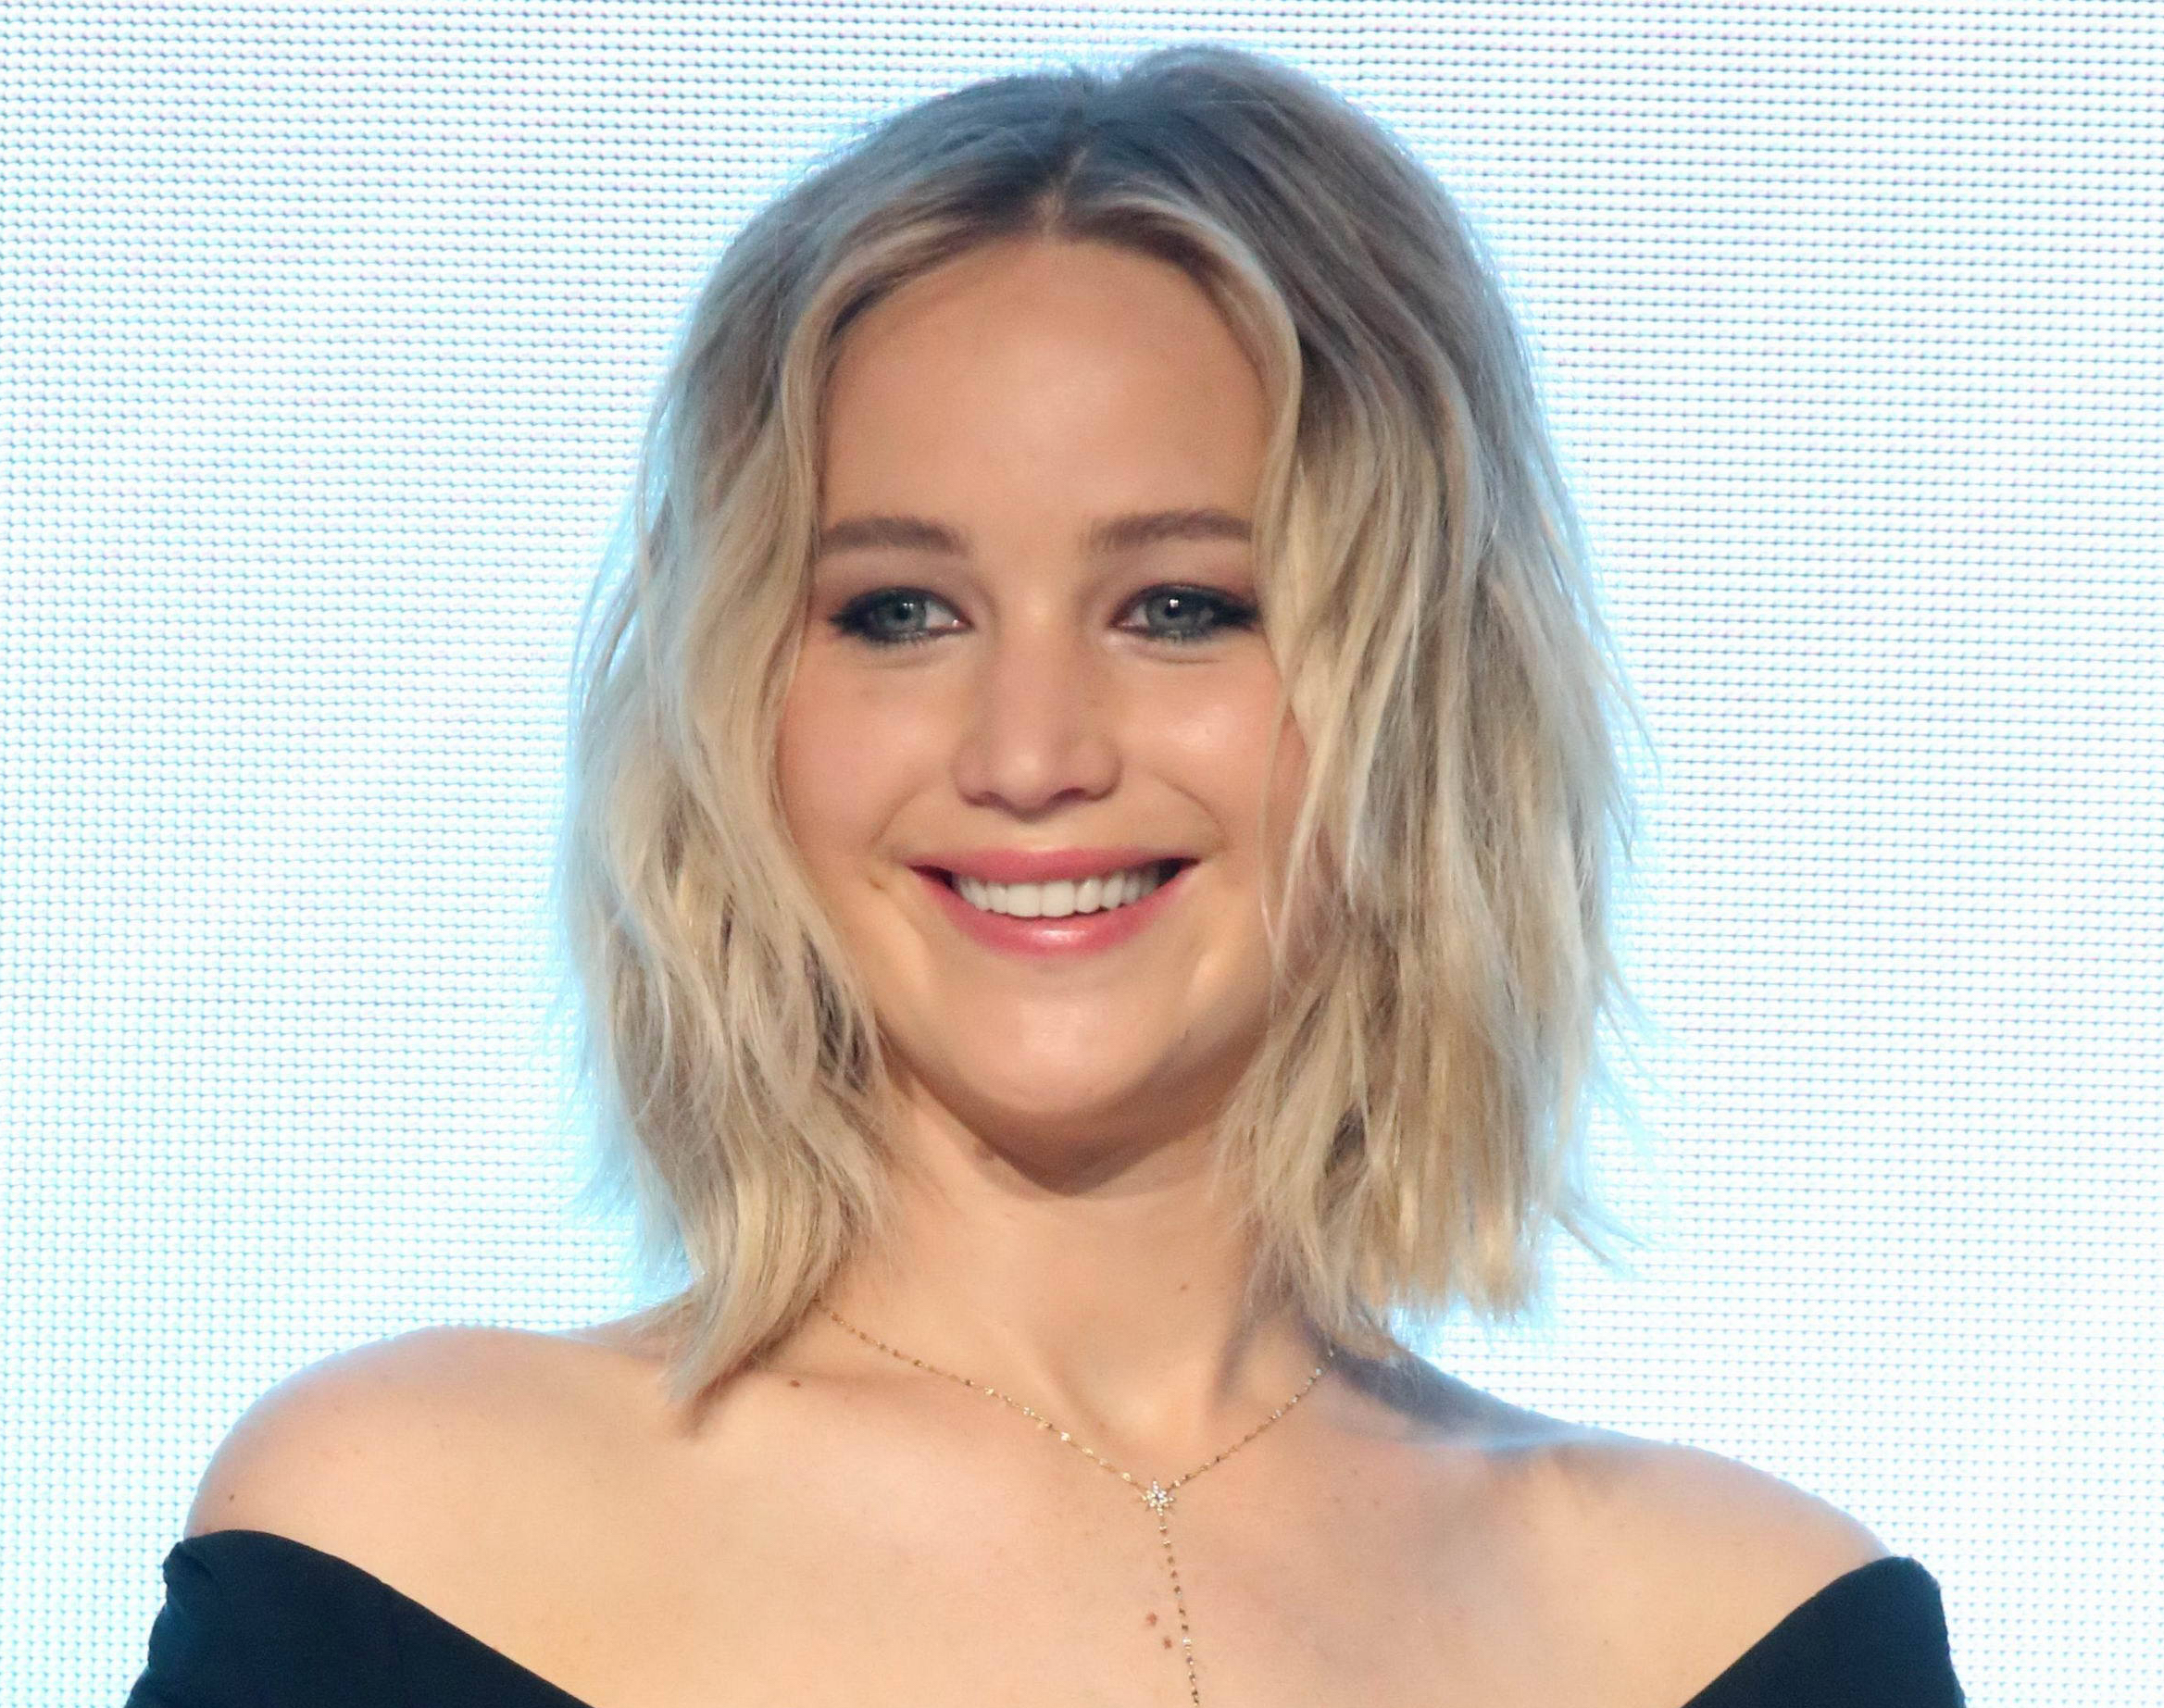 Jennifer Lawrence stuns in Dior's new Lacquer Stick lipstick campaign